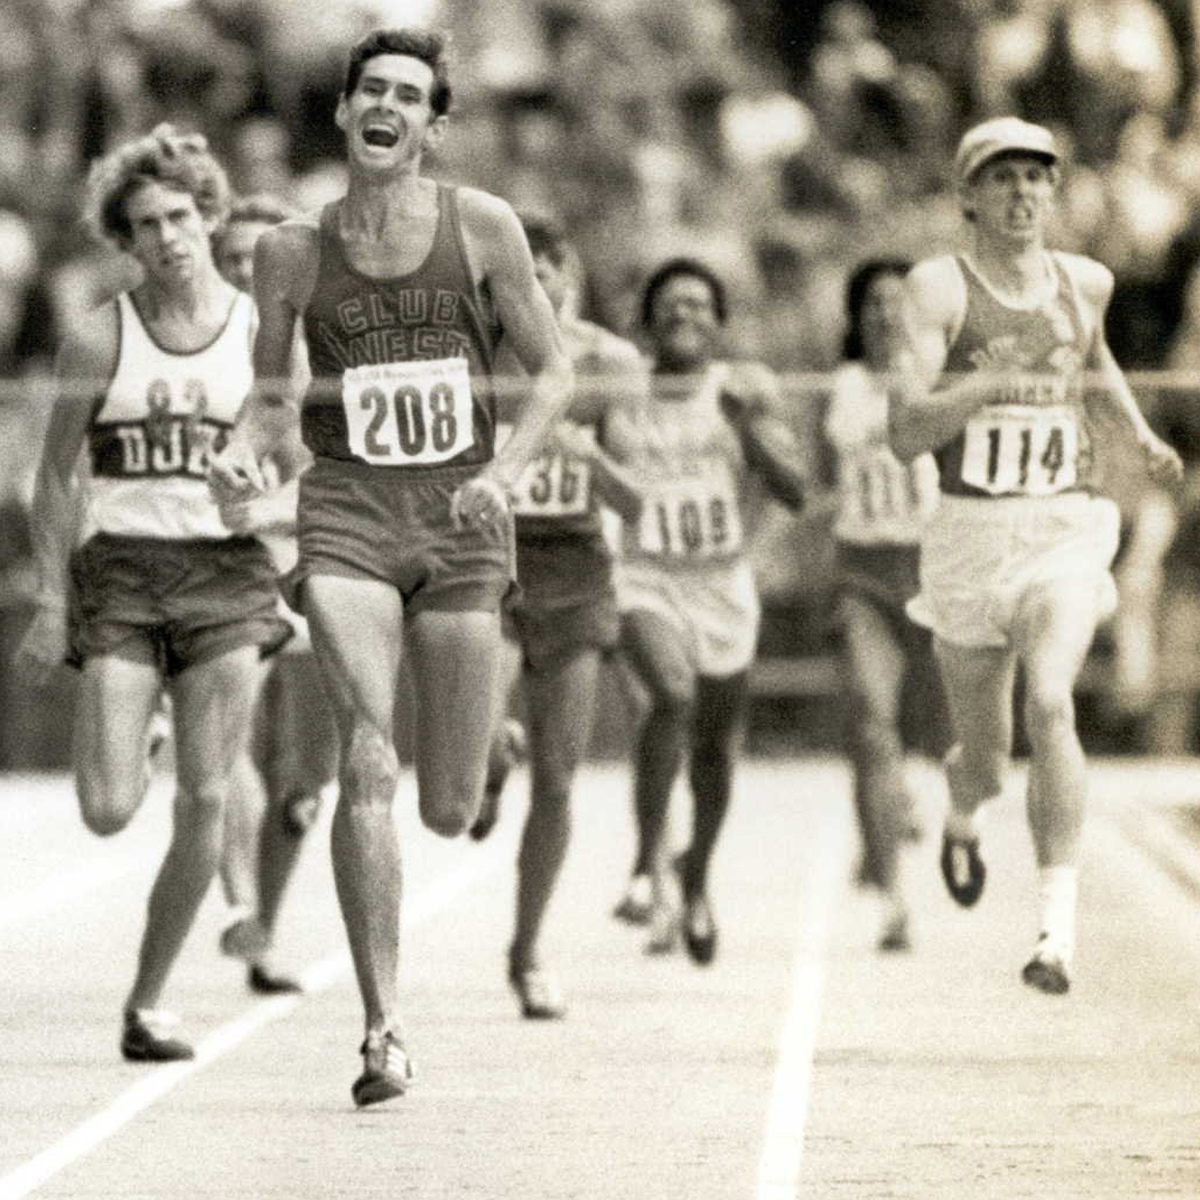 Rising to the Challenge: Jim Ryun and the 4-Minute Mile